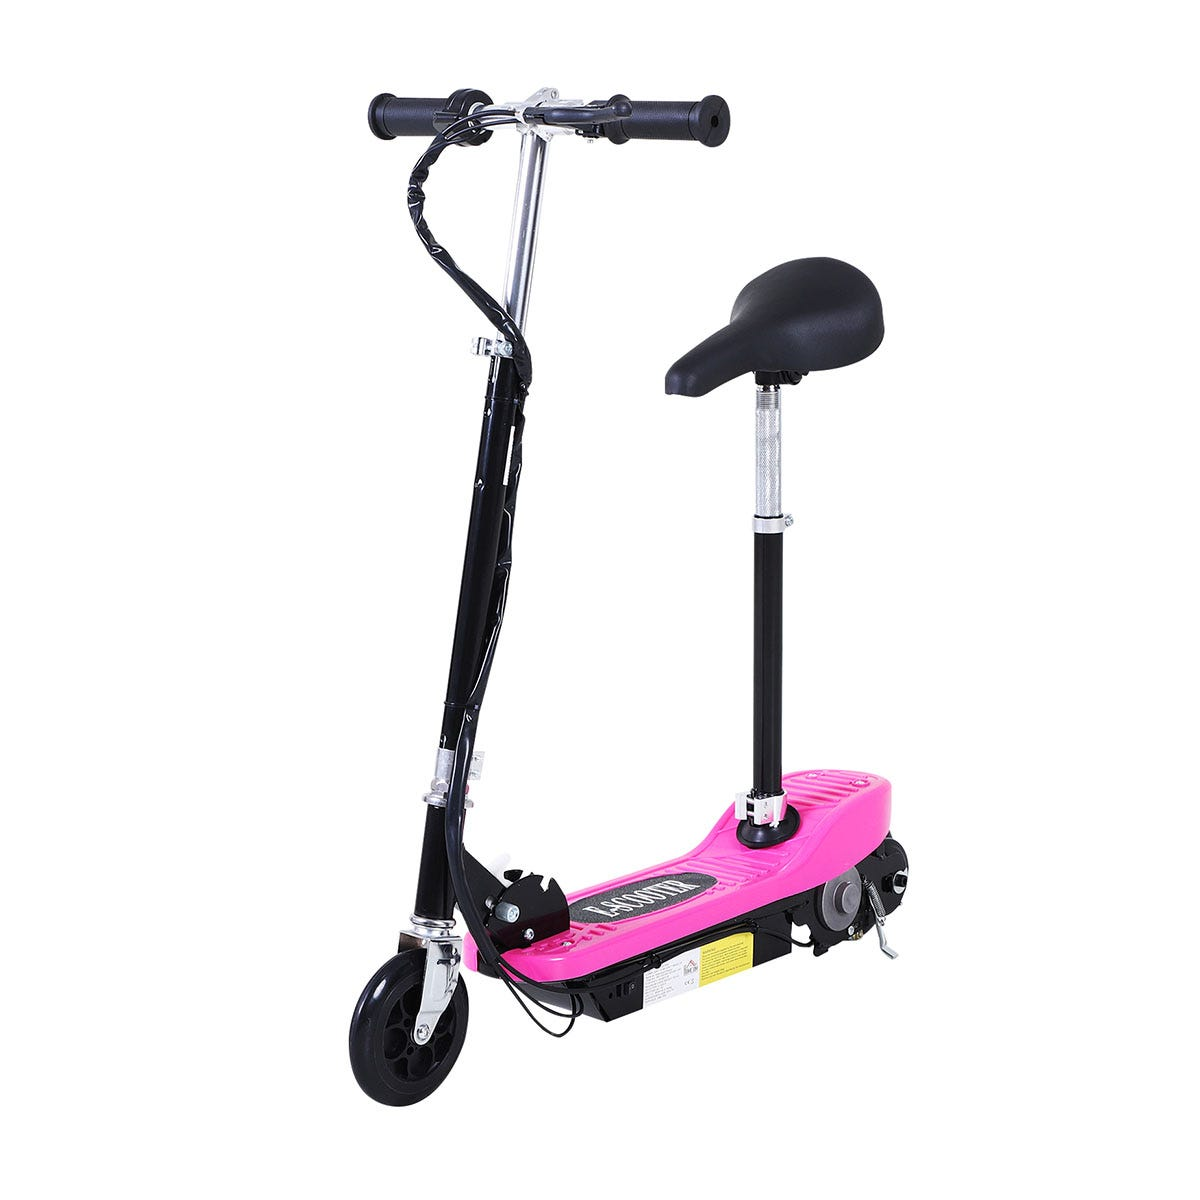 Reiten Kids Foldable E Scooter Electric 120W Toy with Brake Kickstand - Pink